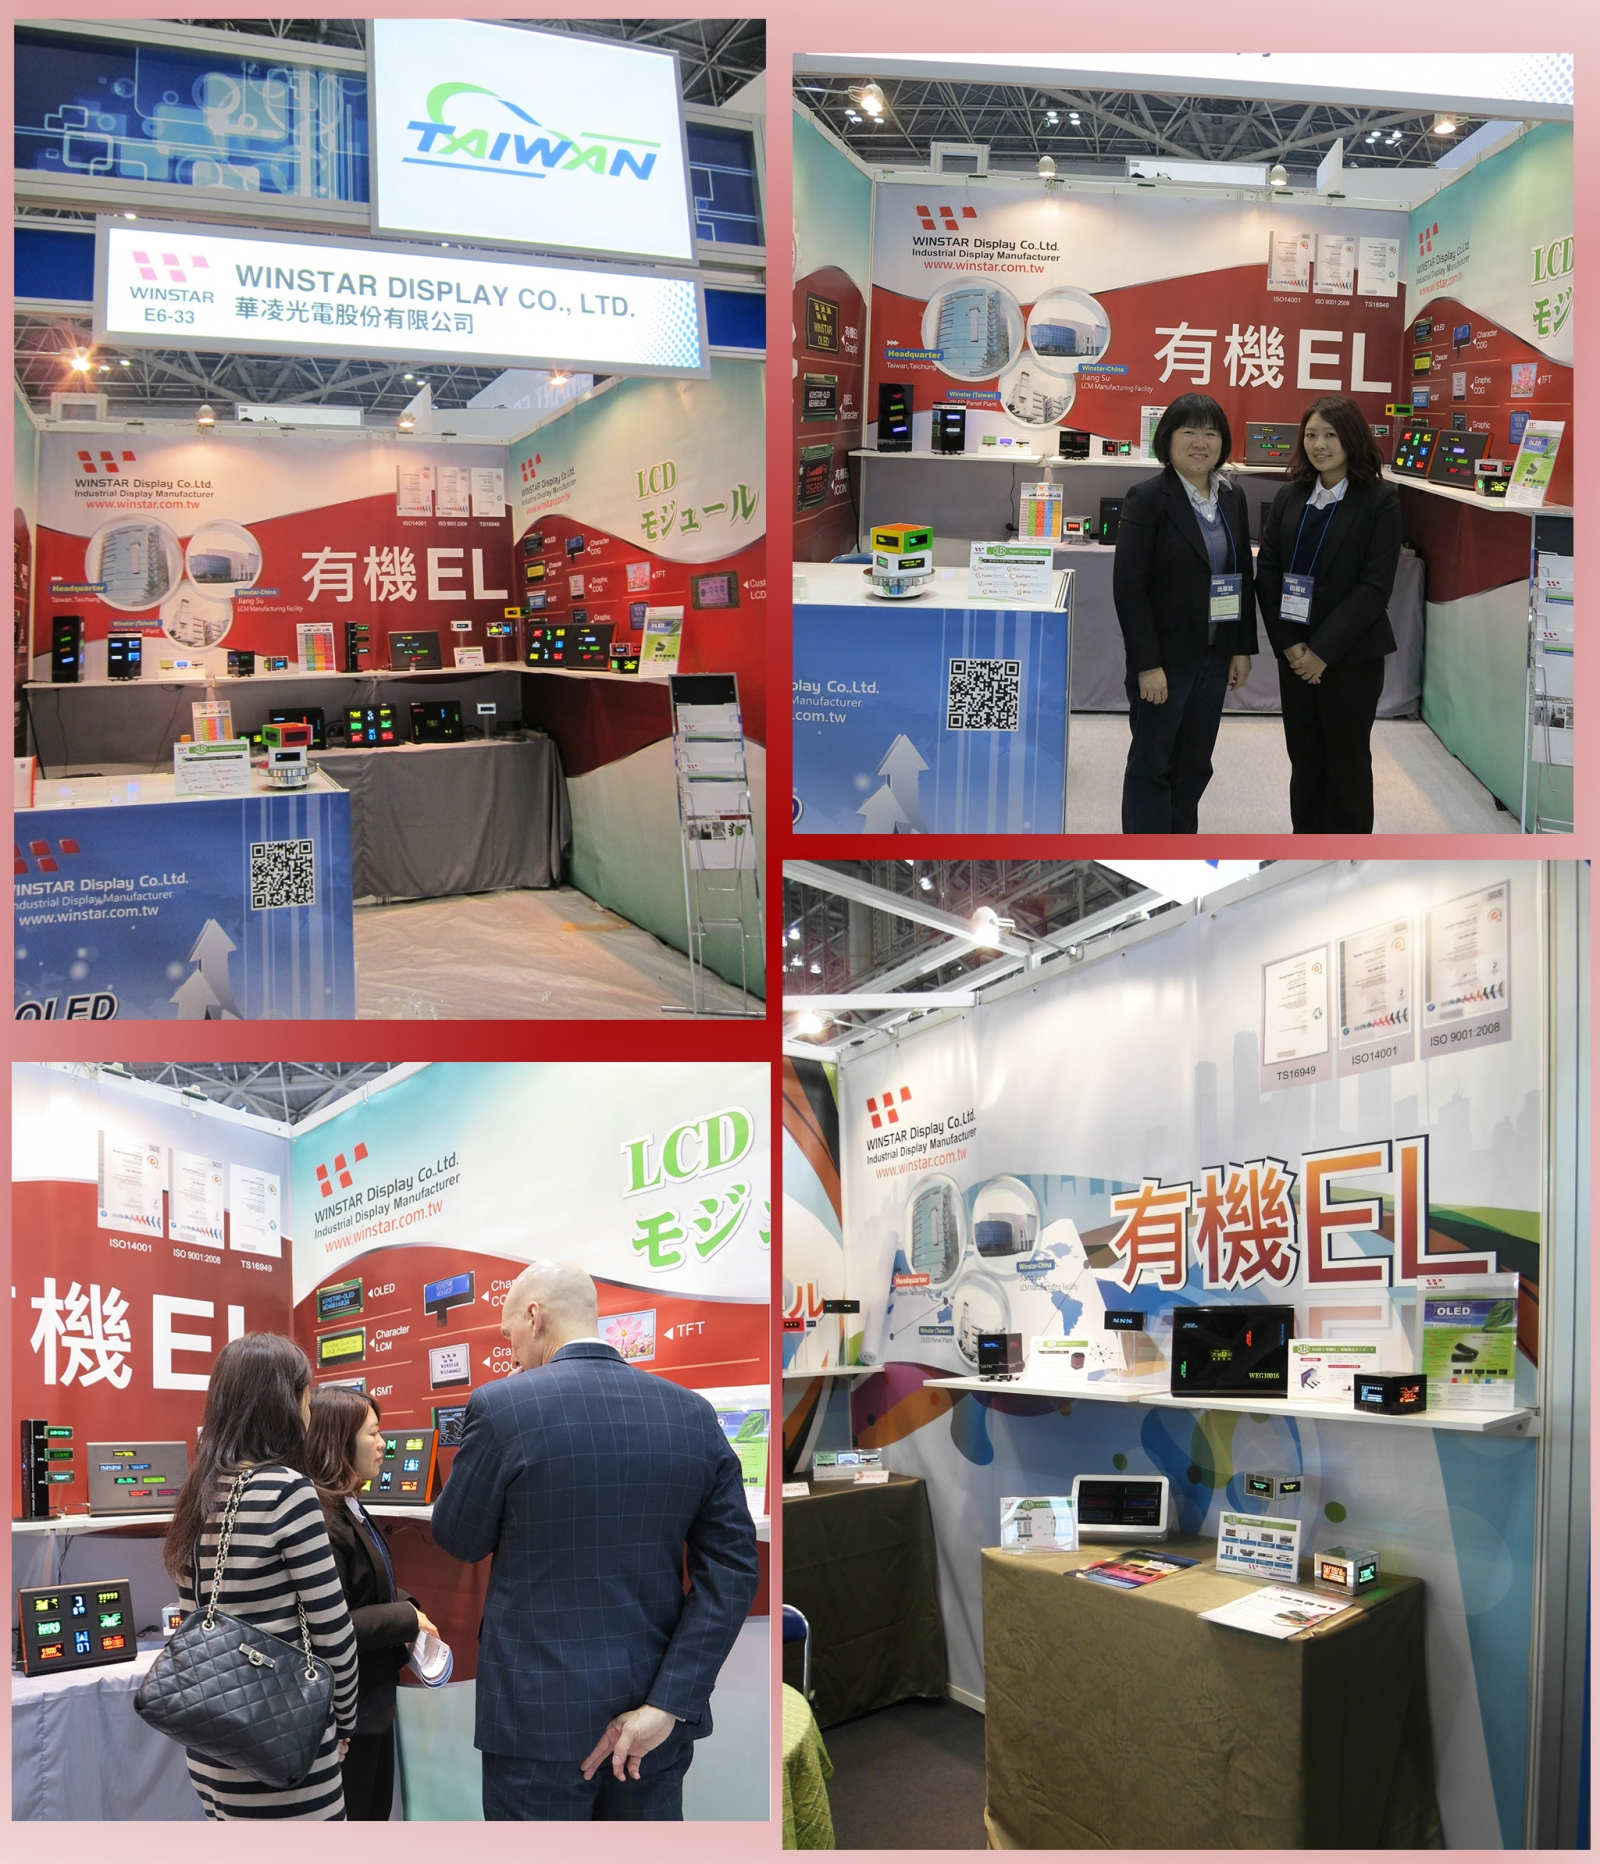 Smart Grid Expo Japan 2014 - Winstar Display